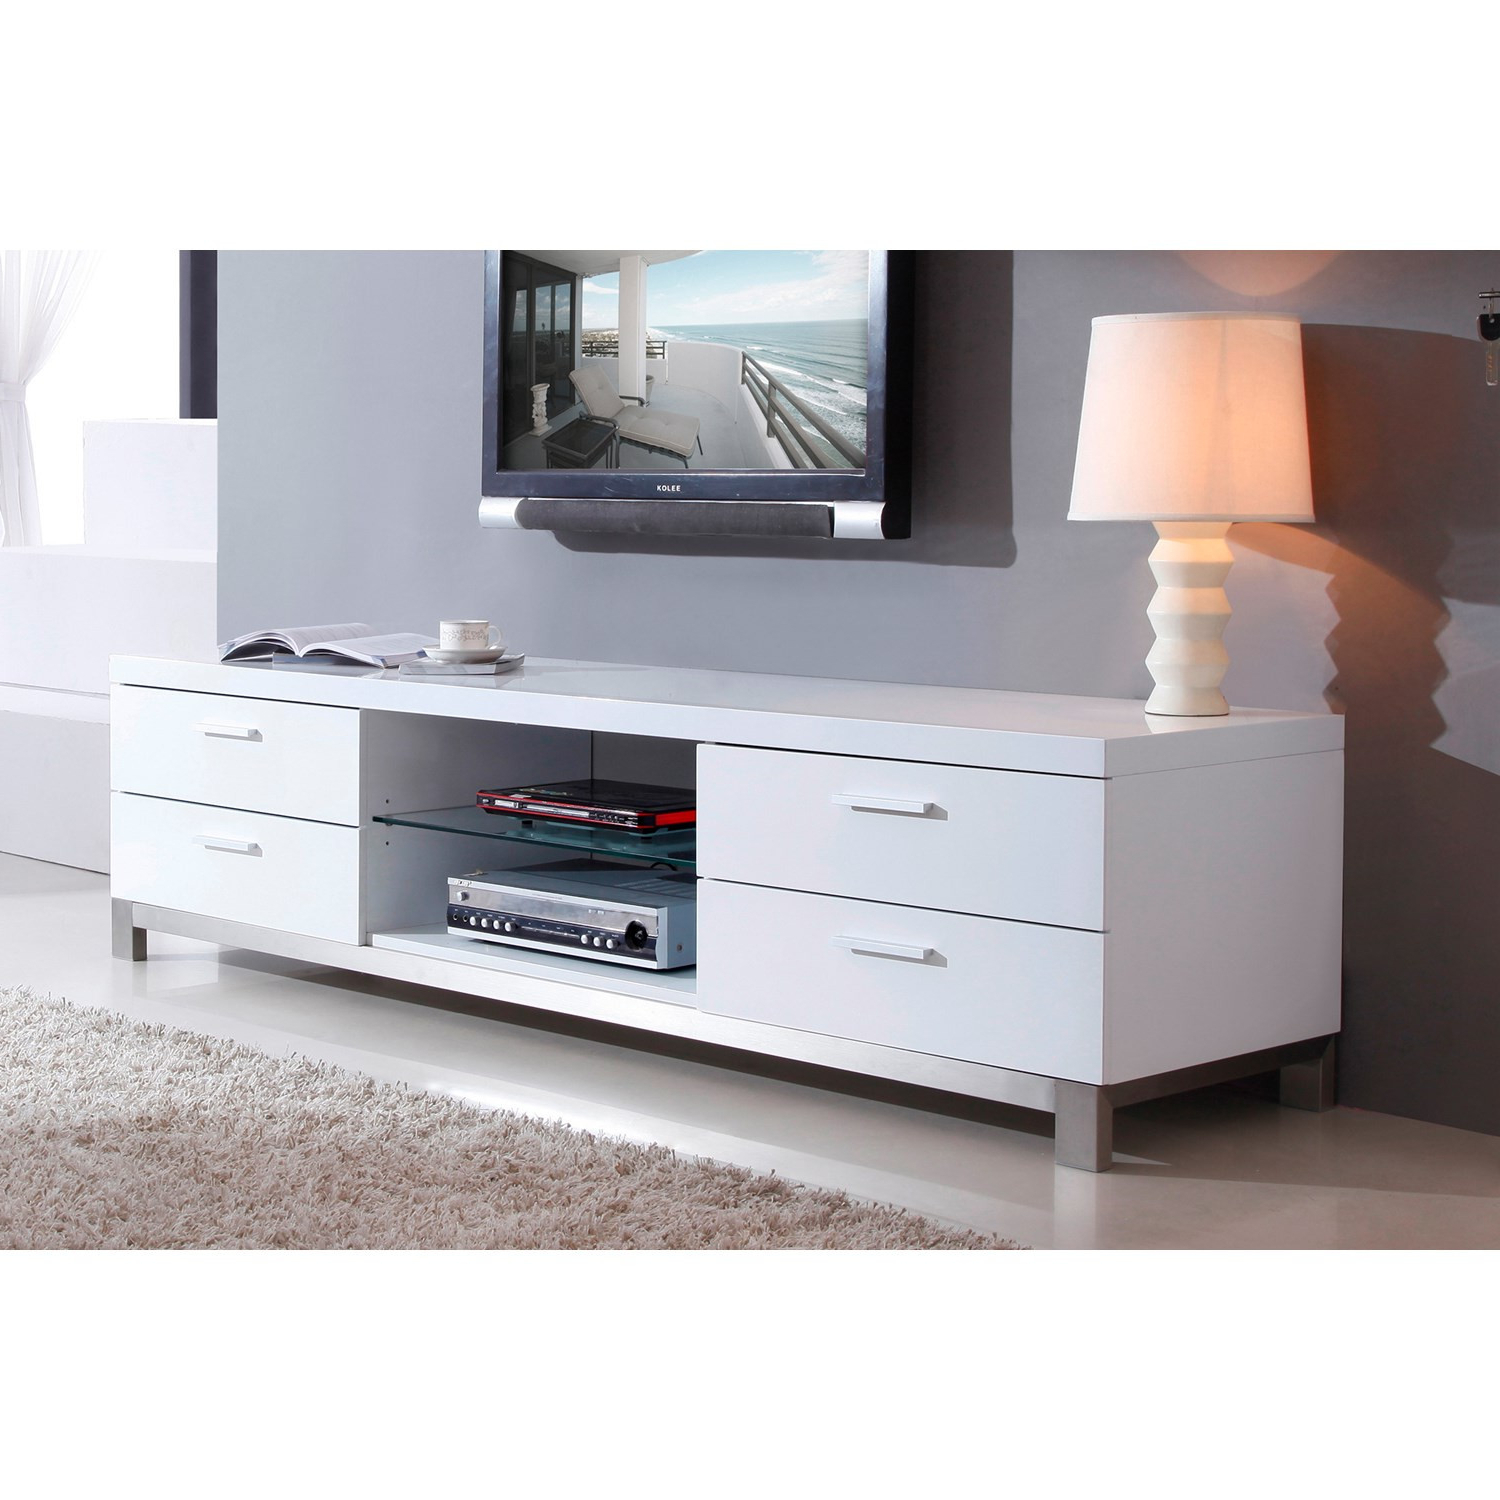 White Corner Tv Stand With Mirrored Cabinet Door And Single Ample For Most Current White Gloss Corner Tv Stands (View 12 of 20)